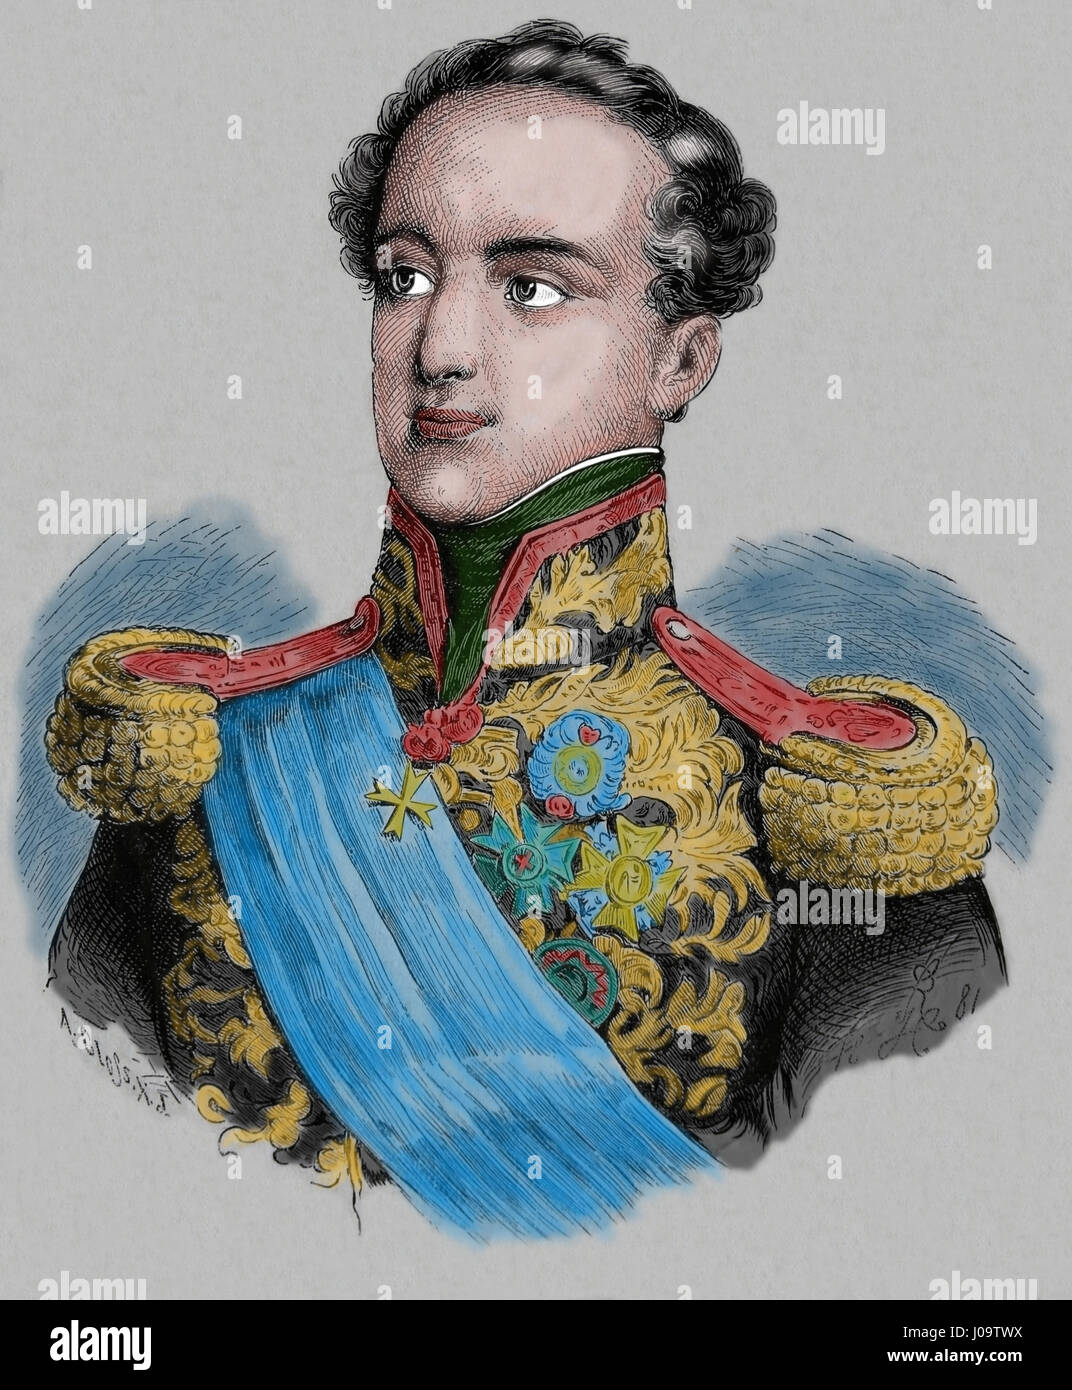 Miguel I of Portugal (1802-1866). The Absolutist. King between 1828-1834. Engraving, Nuestro Siglo 1883. - Stock Image